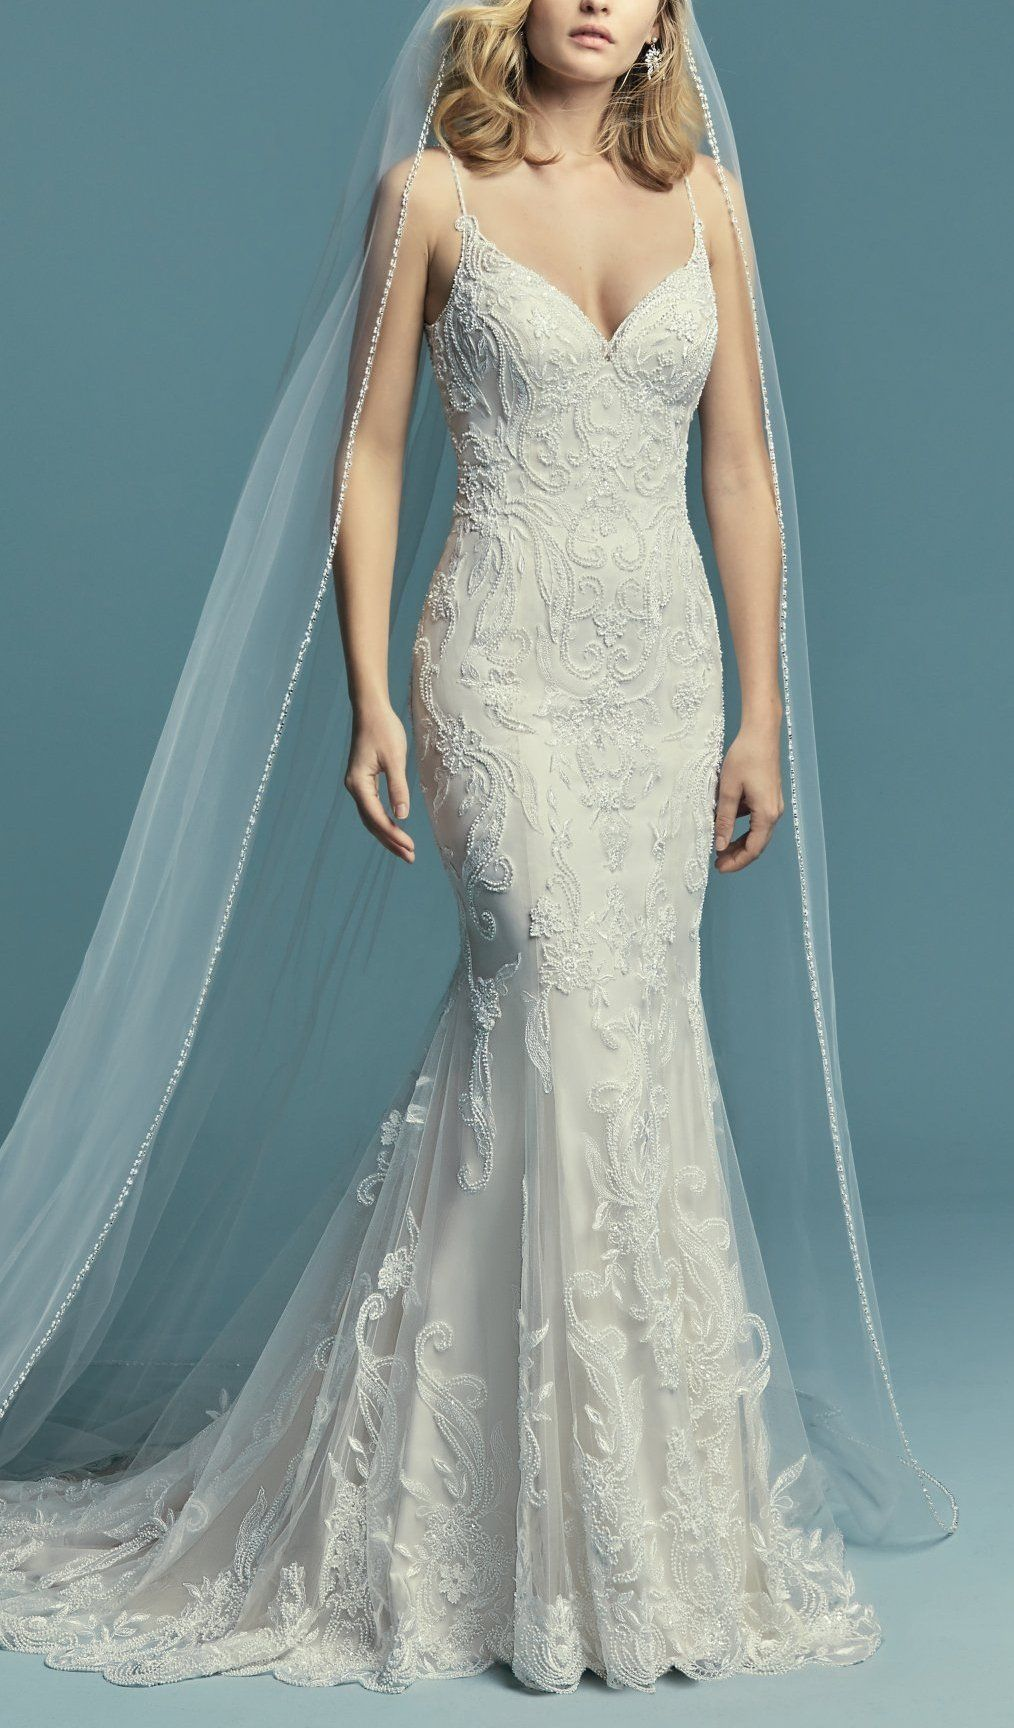 Maggie Sottero Wedding Dresses | Beaded lace, Maggie sottero and ...